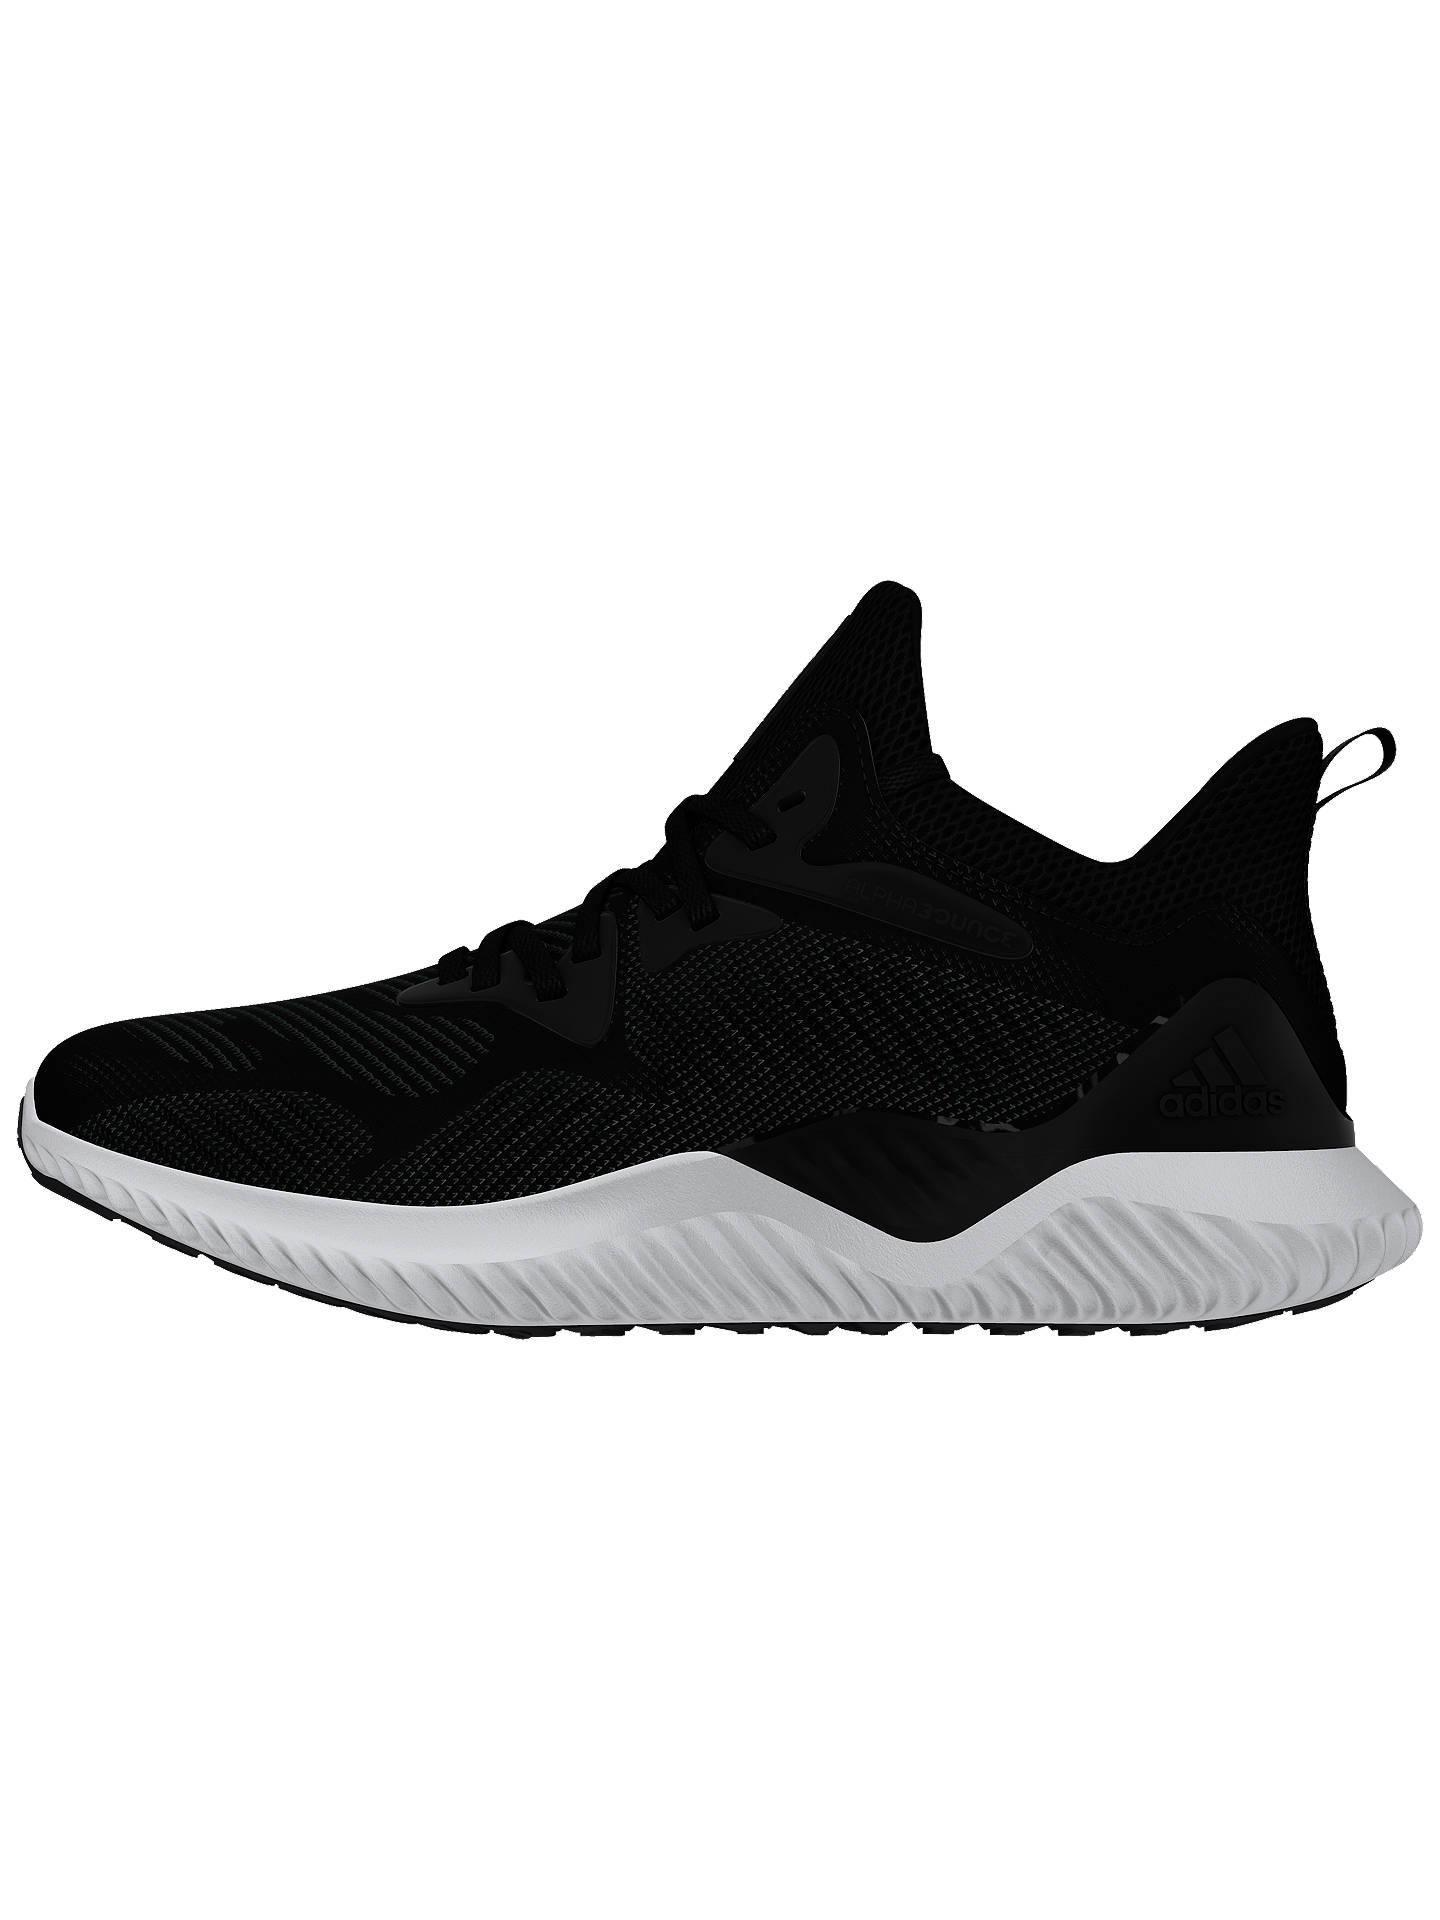 80bd1b7c72d1c adidas Alphabounce Beyond Women s Running Shoes at John Lewis   Partners